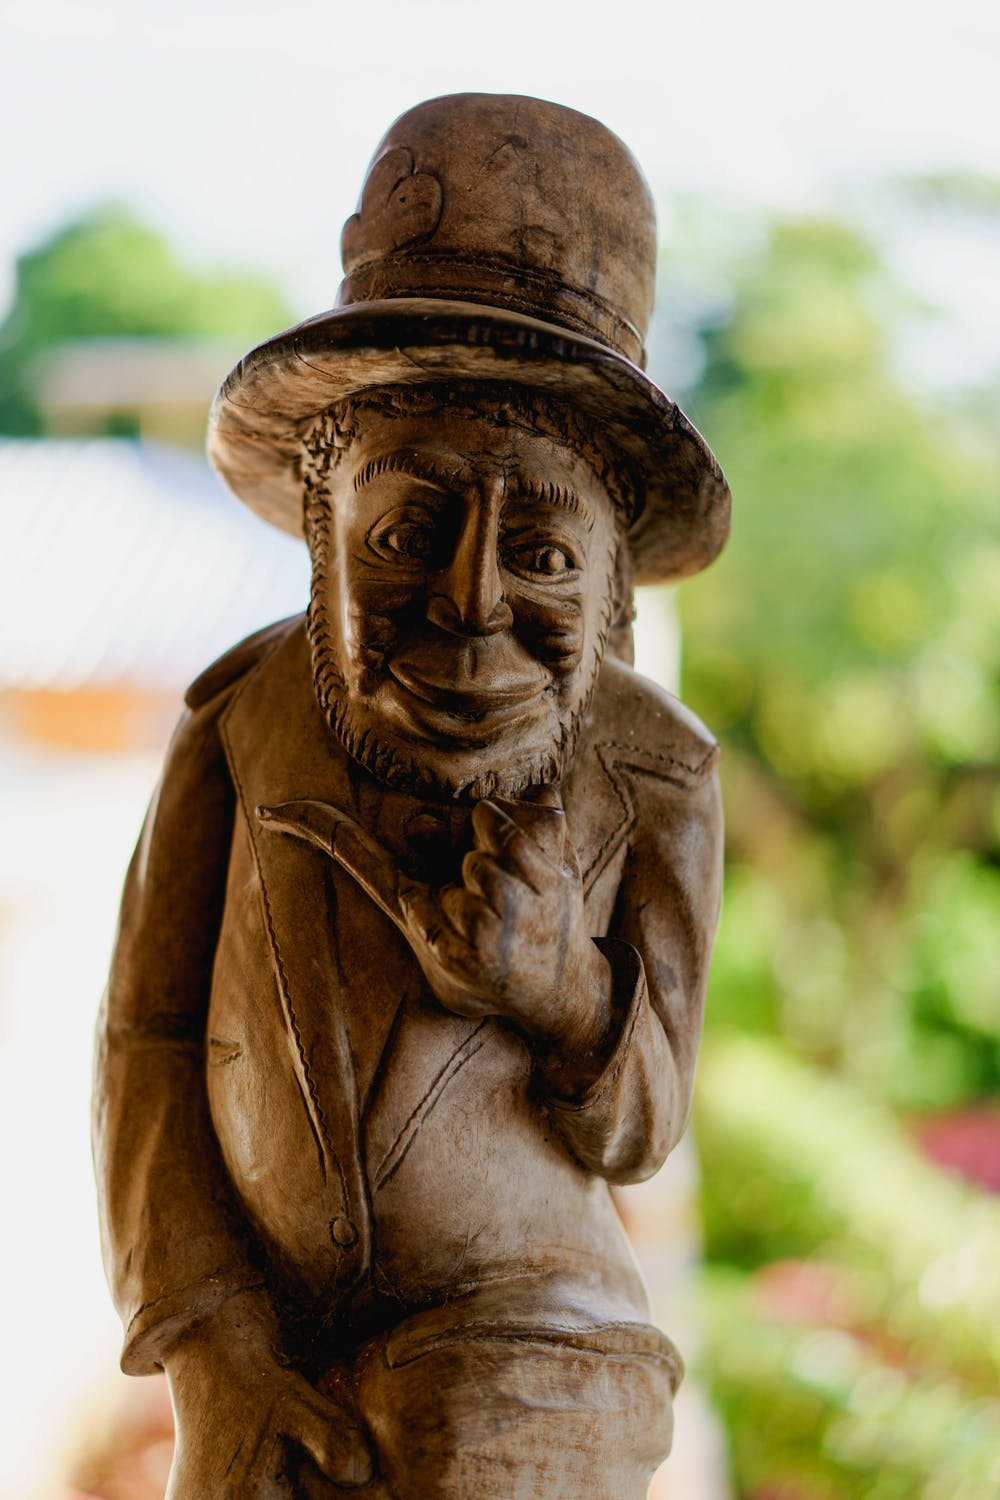 Haitian style wooden carved sculpture of a man wearing a top hat and a suit